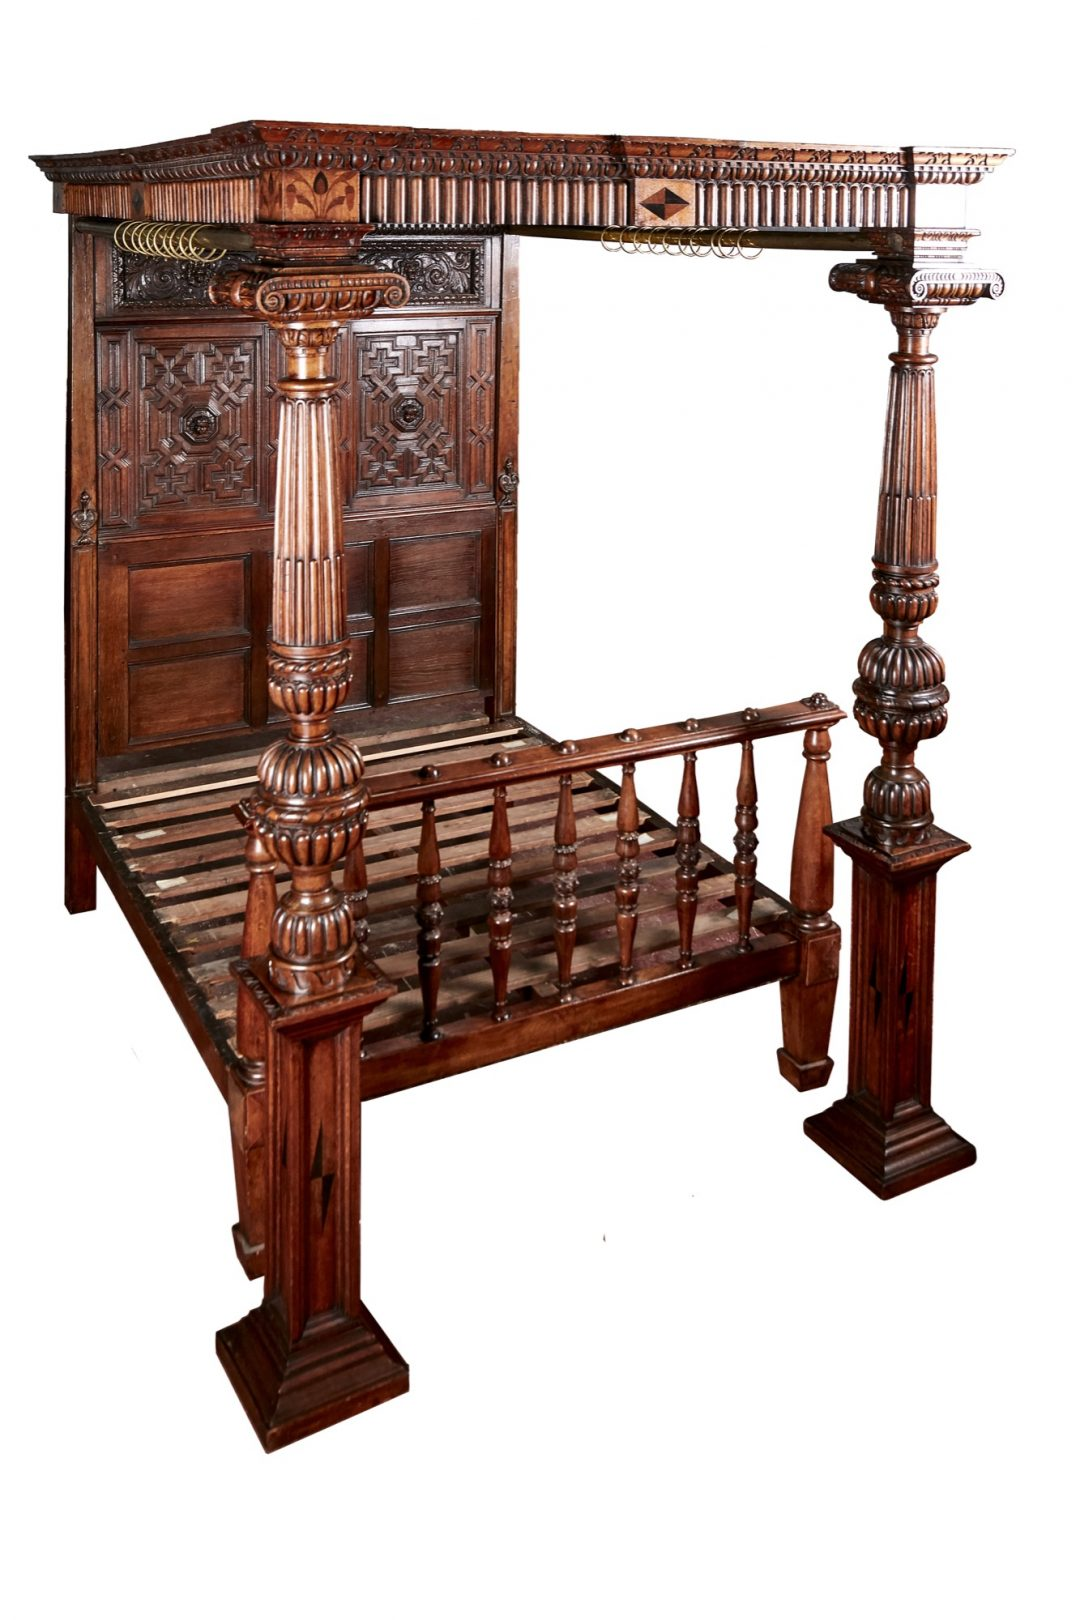 Victorian 4 poster bed